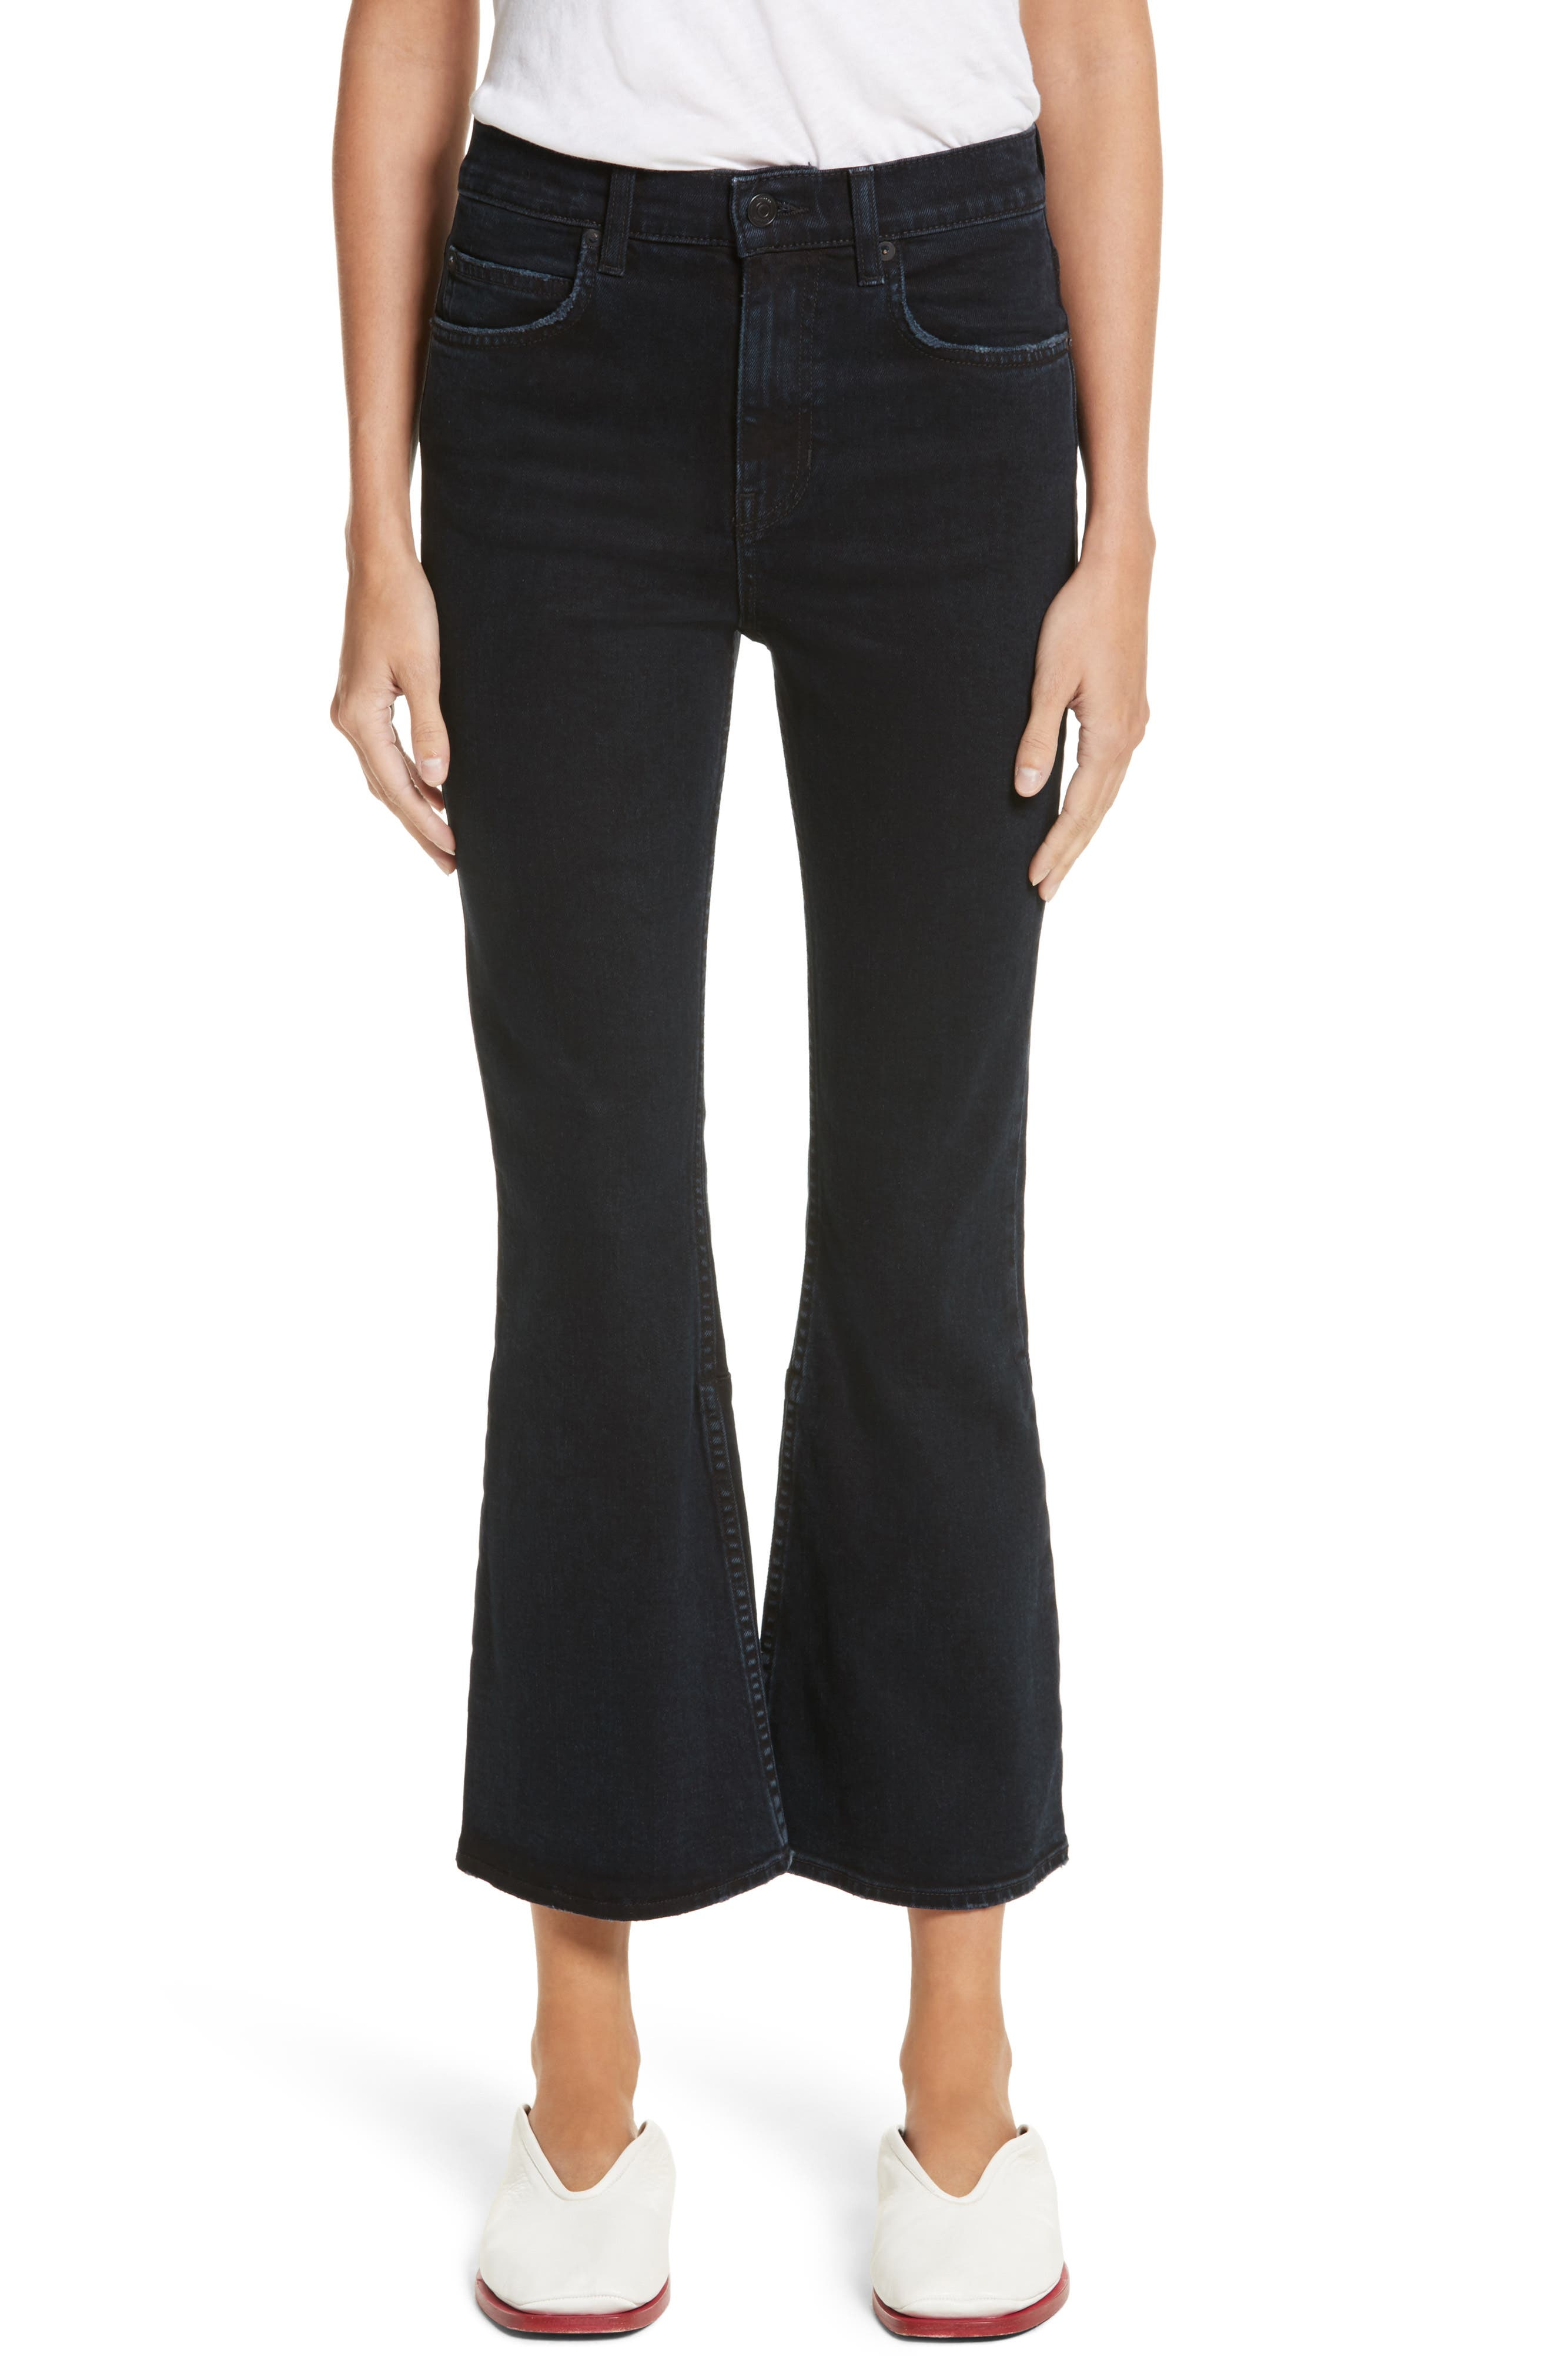 PSWL Crop Kick Flare Jeans,                         Main,                         color, Stone Washed Black